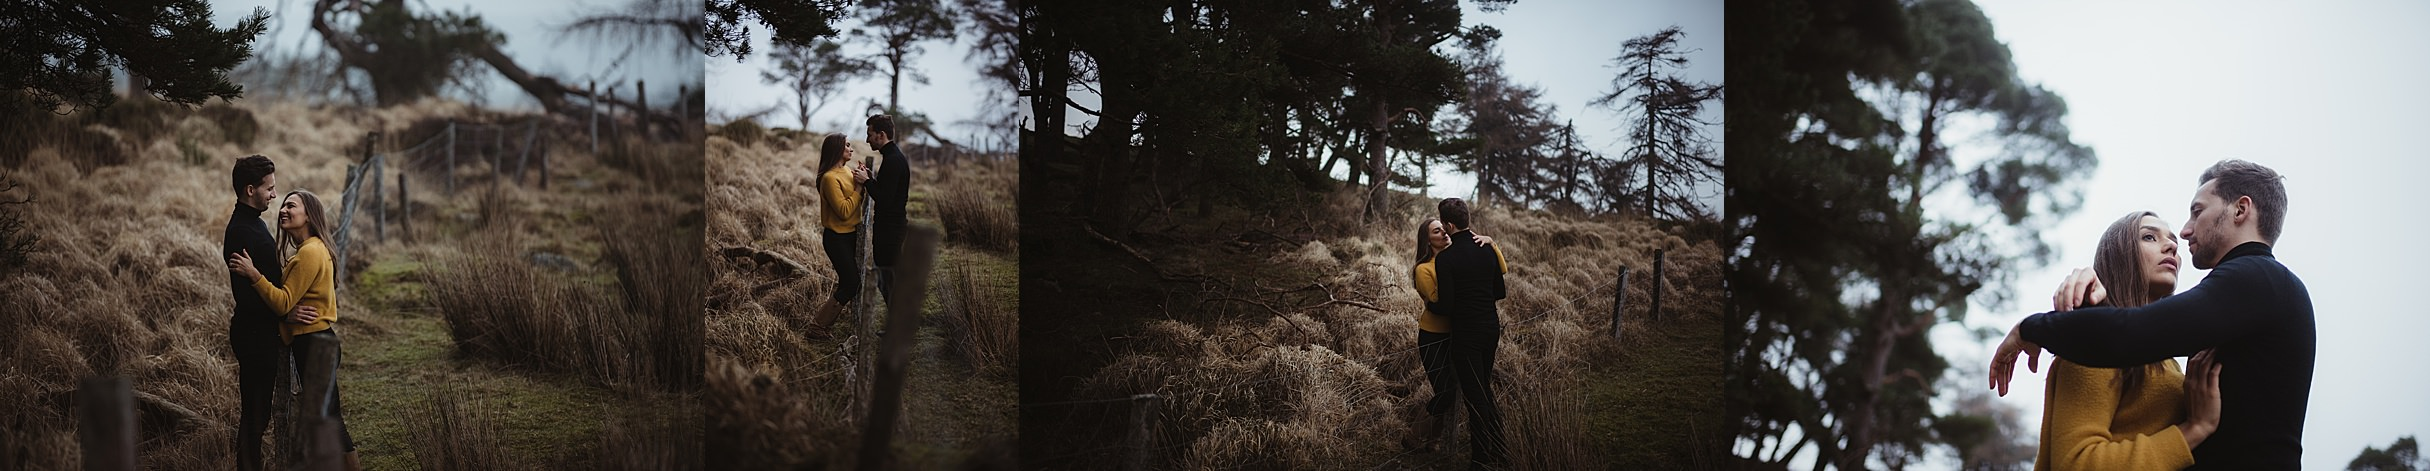 Wicklow-Mountains-Engagement-Dublin-Photographer-Session-80.jpg